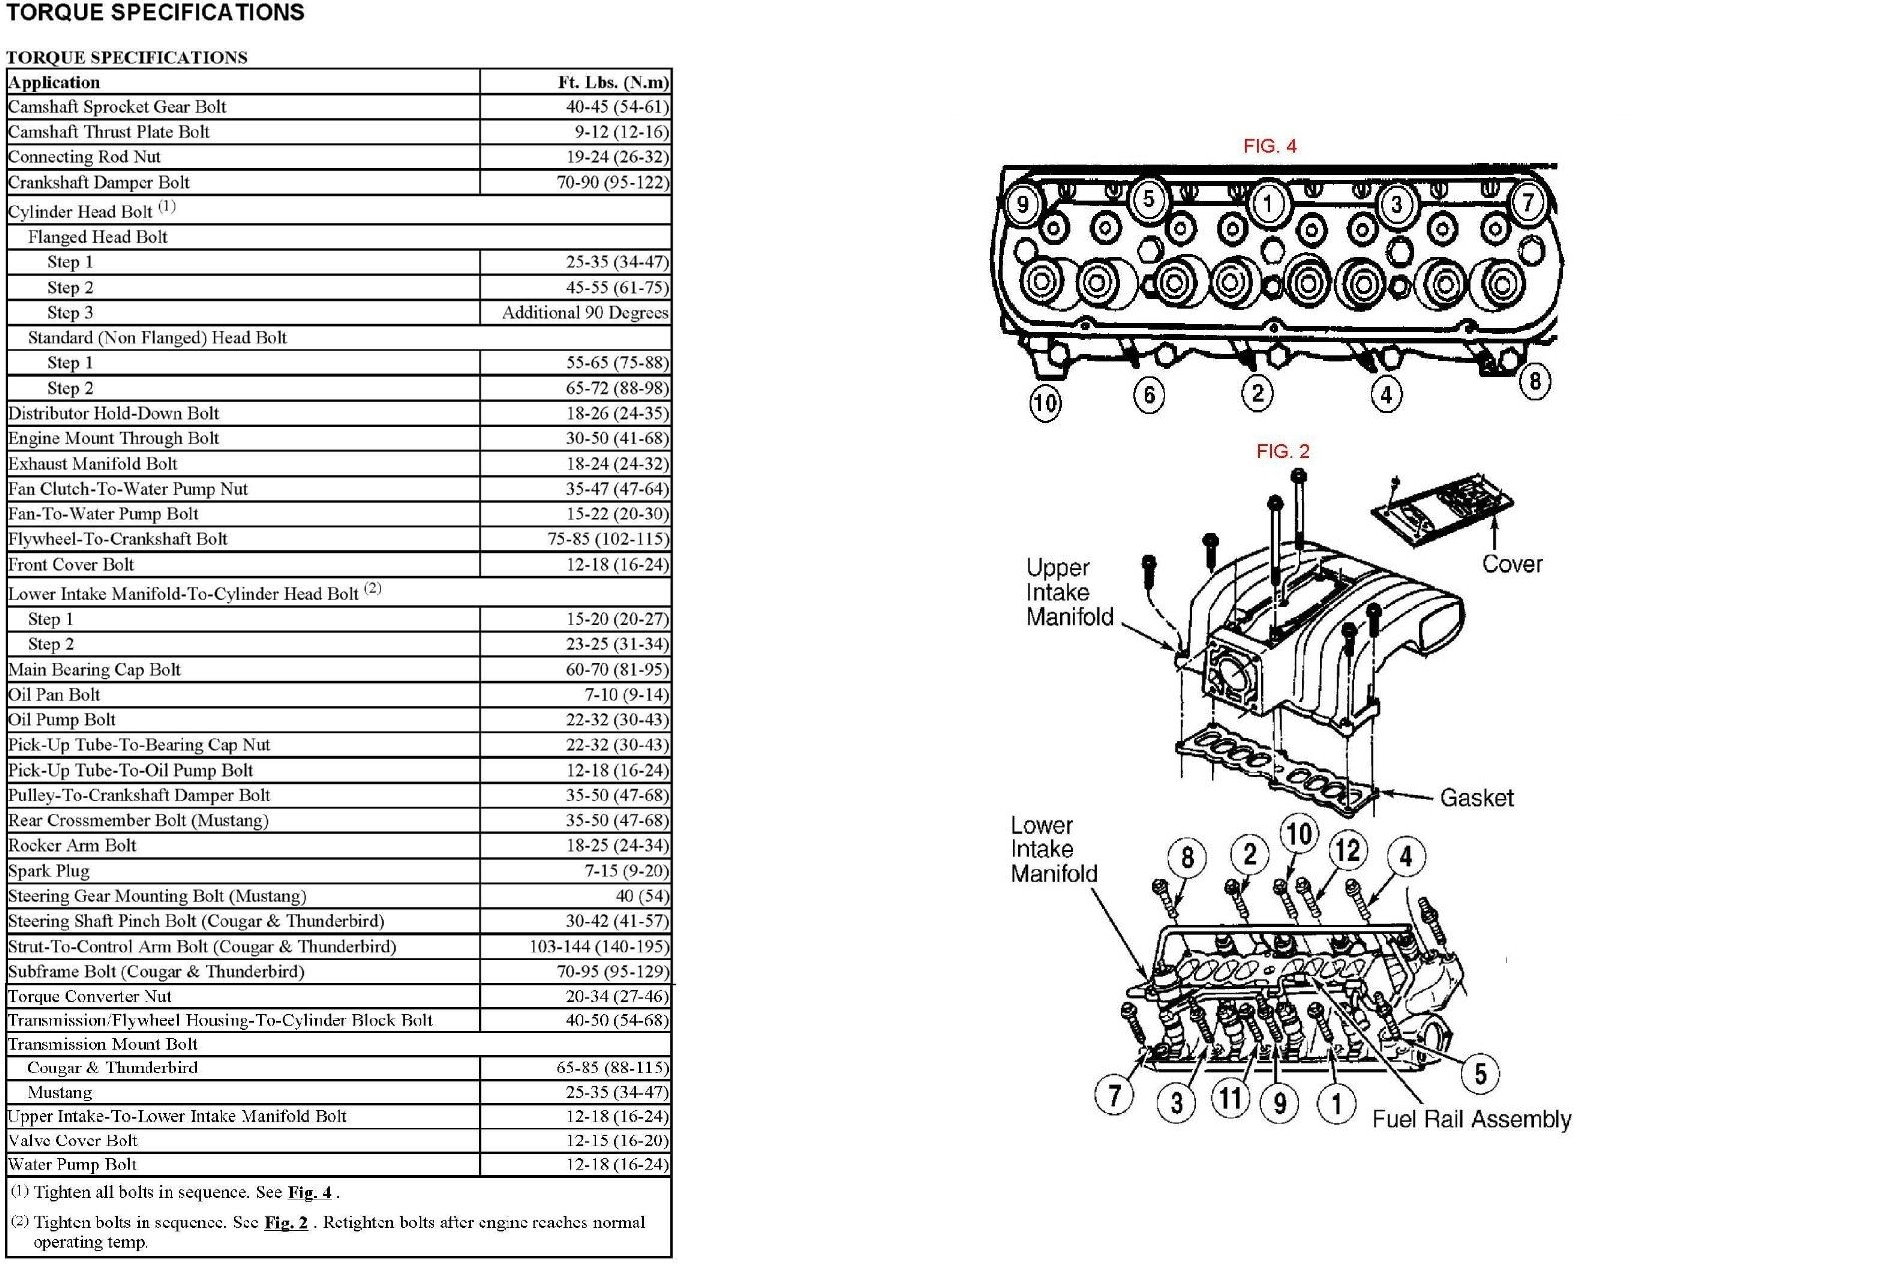 3800 V6 Engine Diagram Fox Body 302 Engine Diagram Wiring Info • Of 3800 V6  Engine